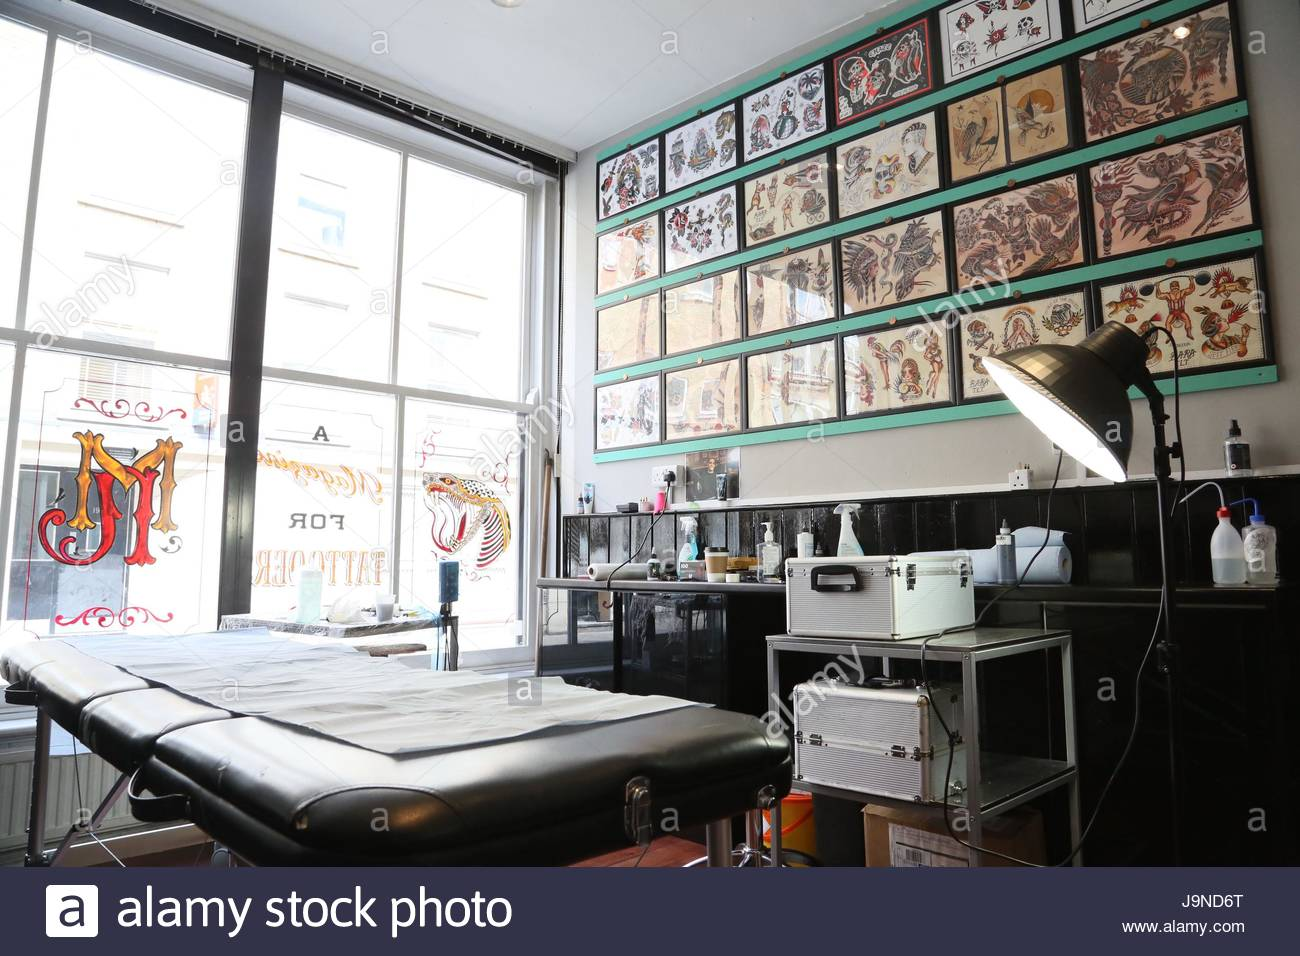 Tattoo Studio London Brick Lane Stockbild